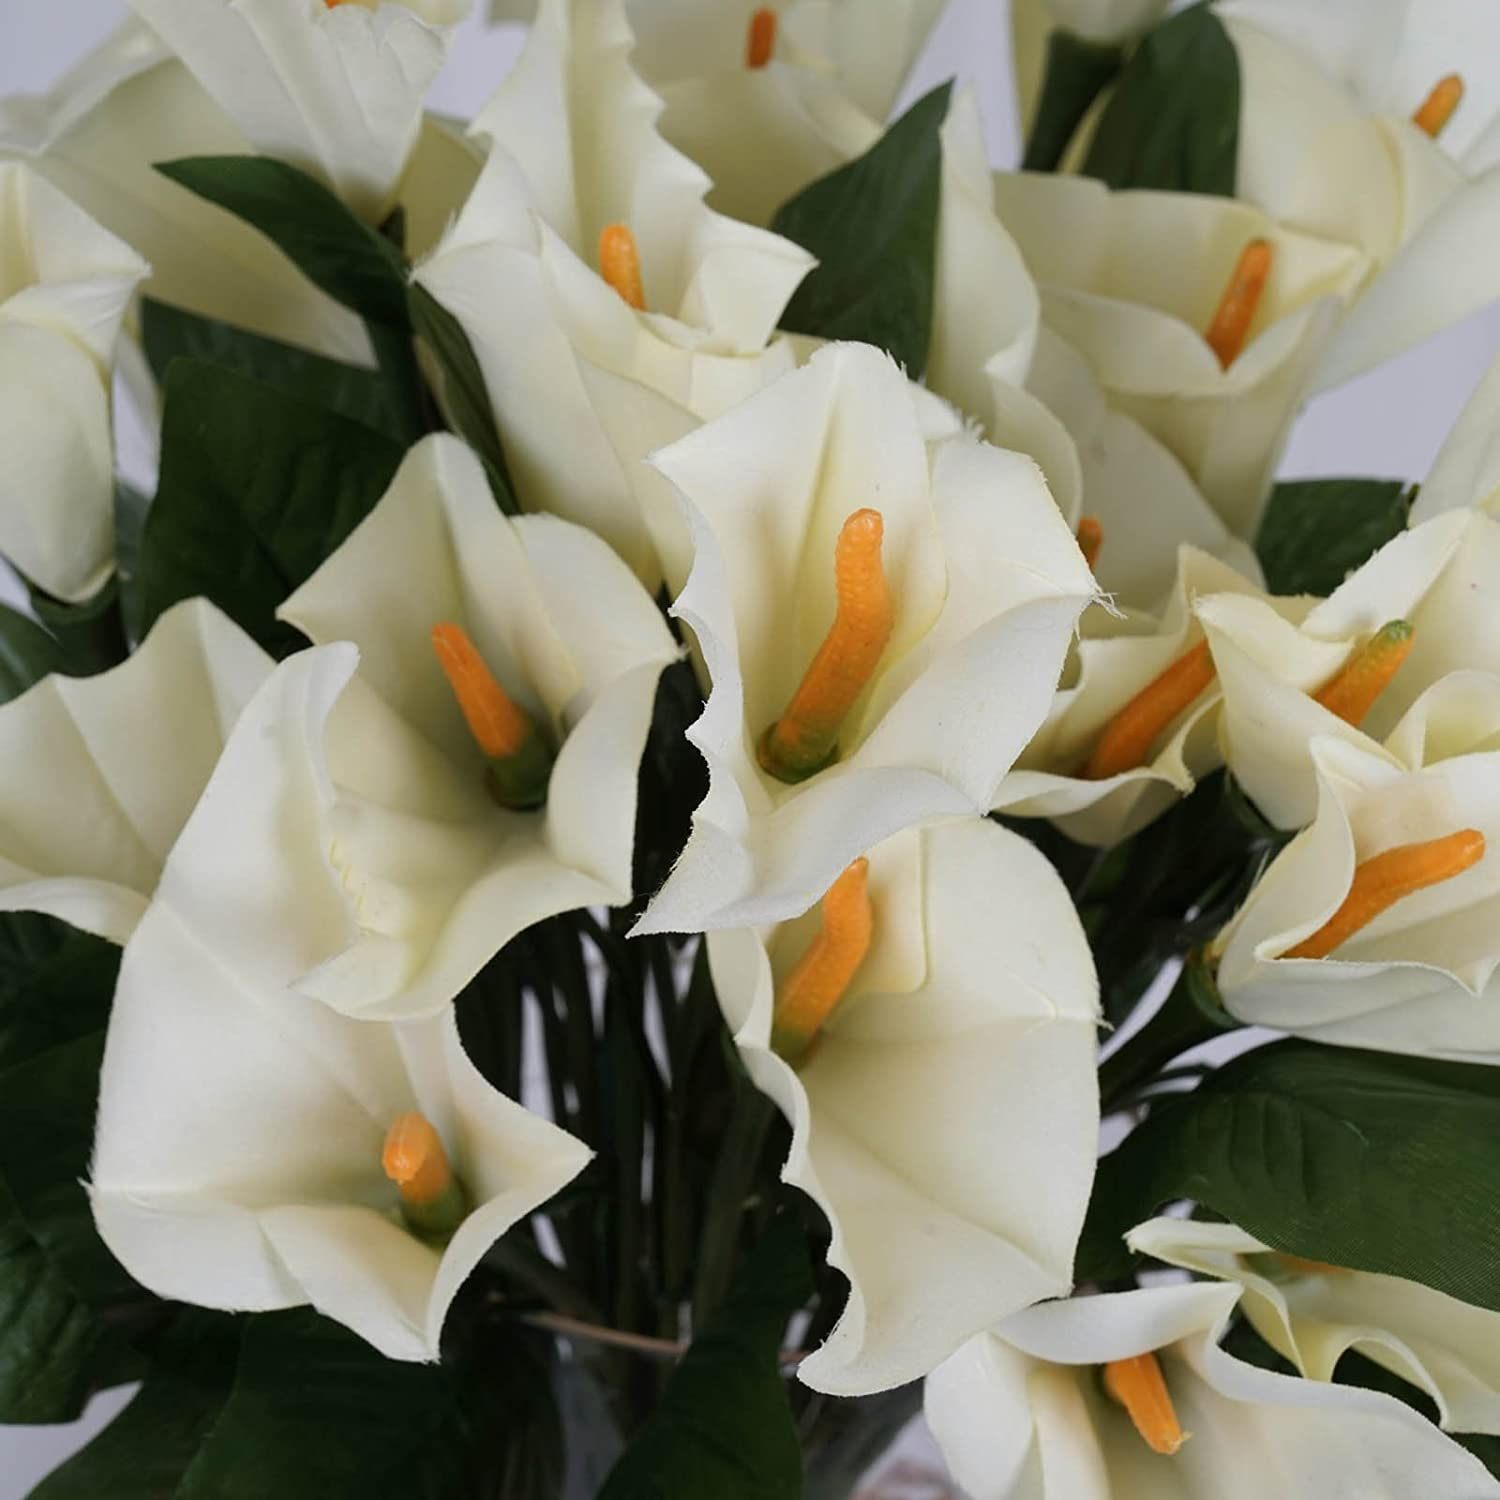 Amazon balsacircle 84 ivory silk calla lilies 12 bushes amazon balsacircle 84 ivory silk calla lilies 12 bushes artificial flowers wedding party centerpieces arrangements bouquets home kitchen izmirmasajfo